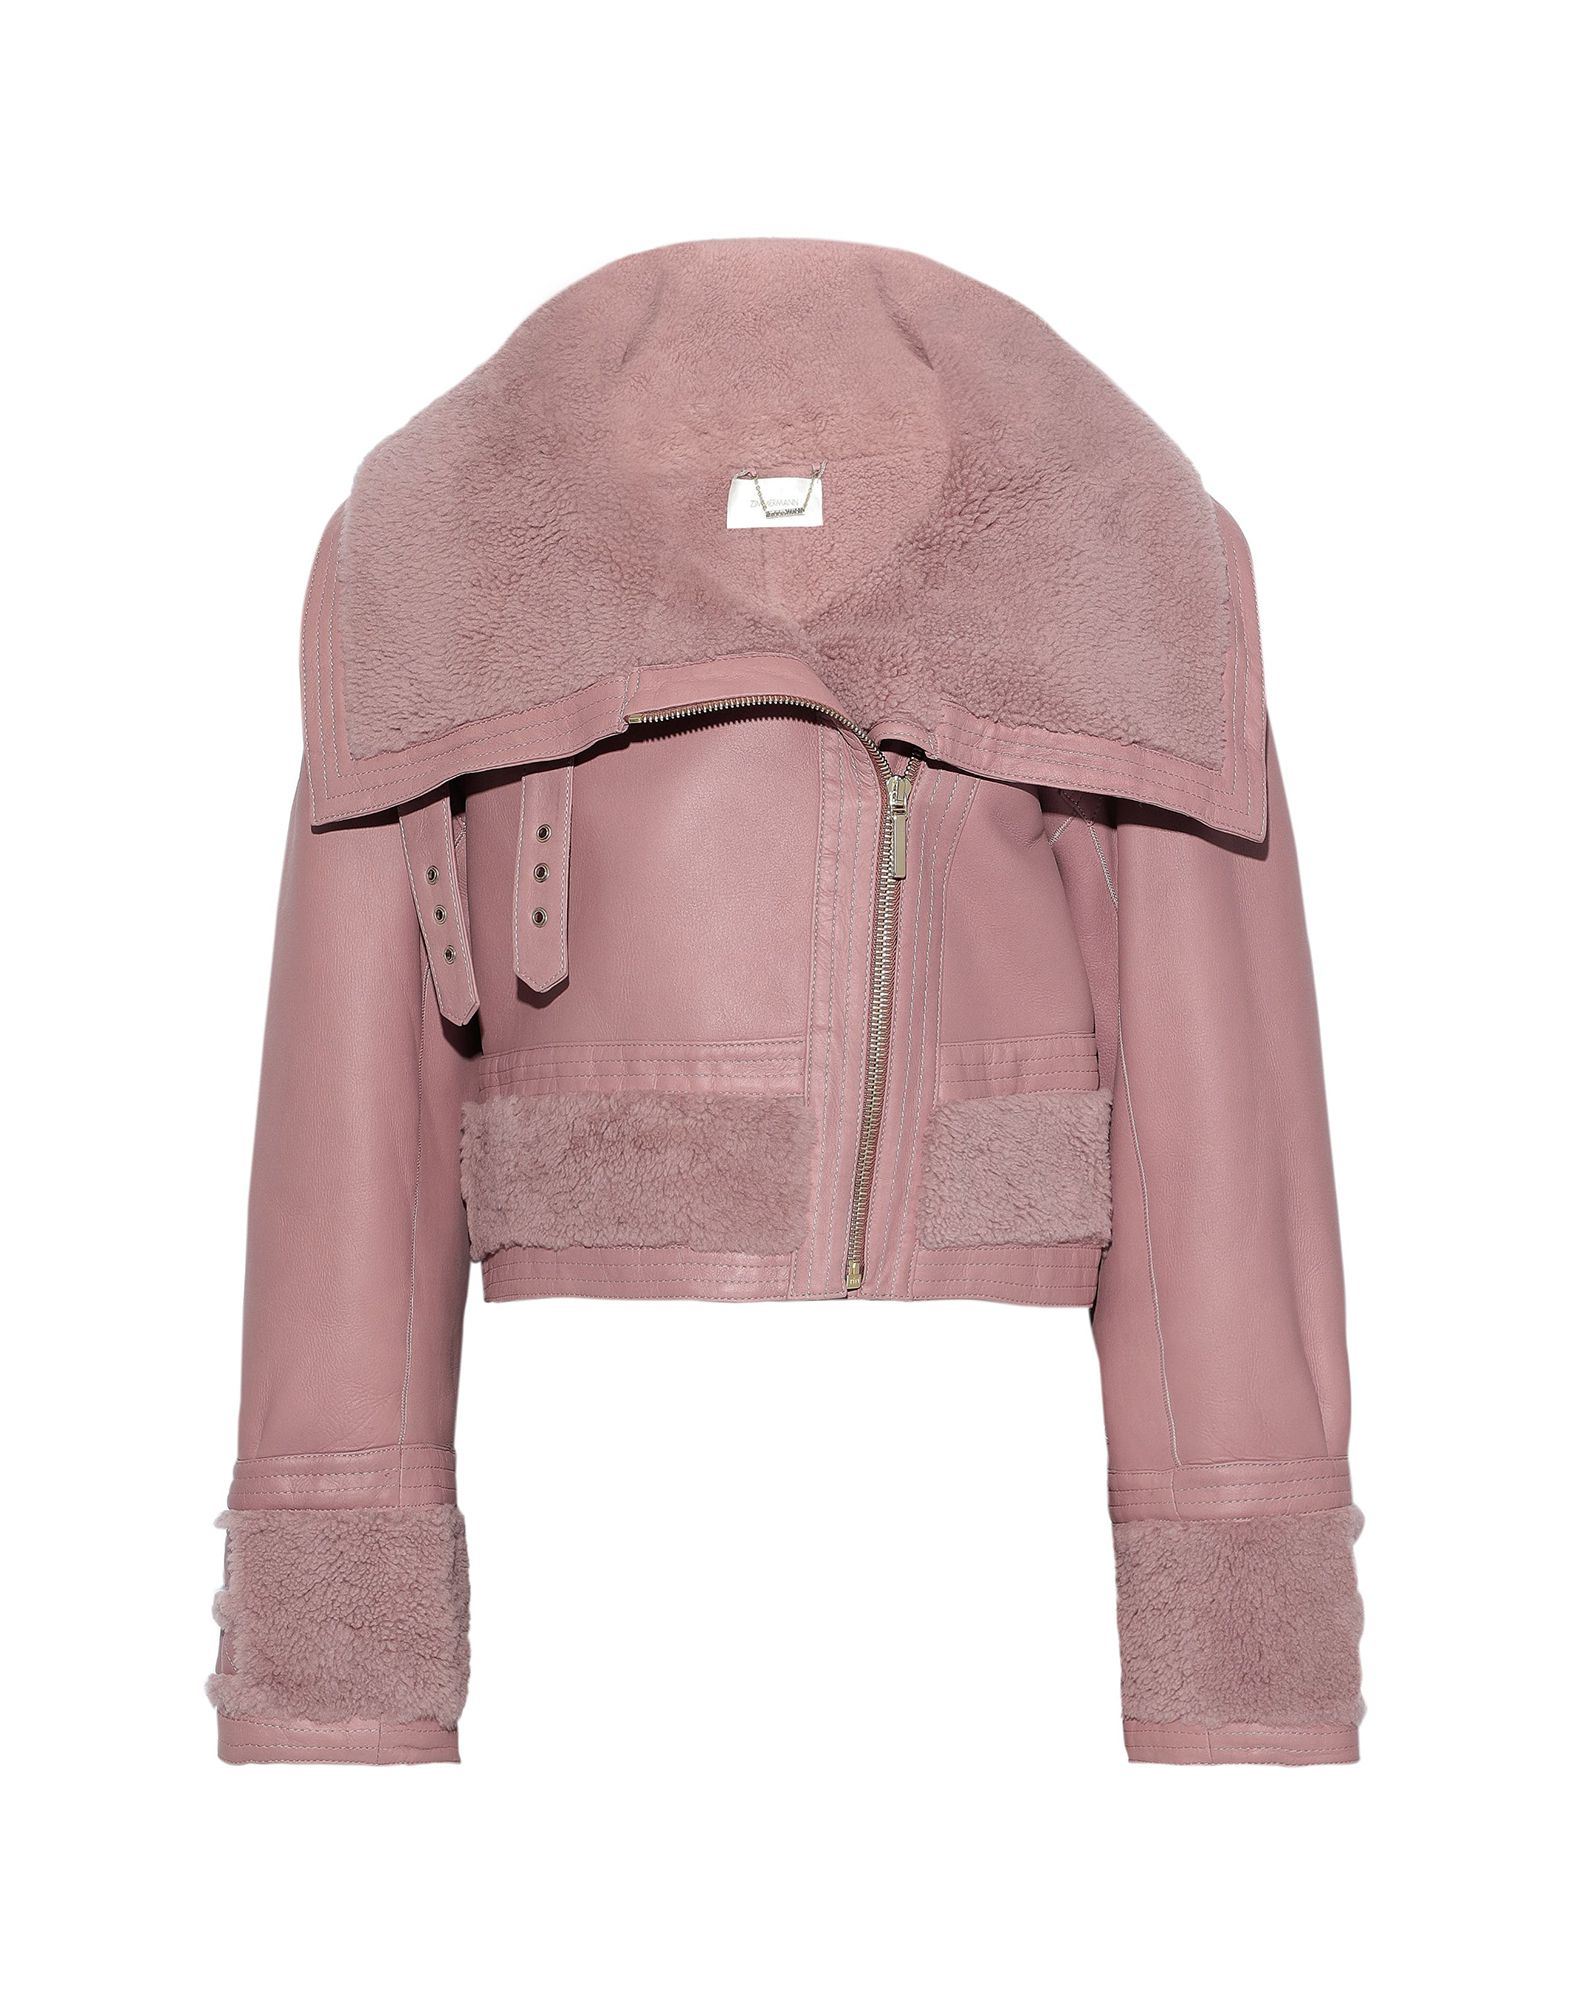 ZIMMERMANN Jackets. leather, buckle, solid color, single-breasted, zipper closure, lapel collar, no pockets, long sleeves, lined in goat hair, contains non-textile parts of animal origin. 100% Lambskin